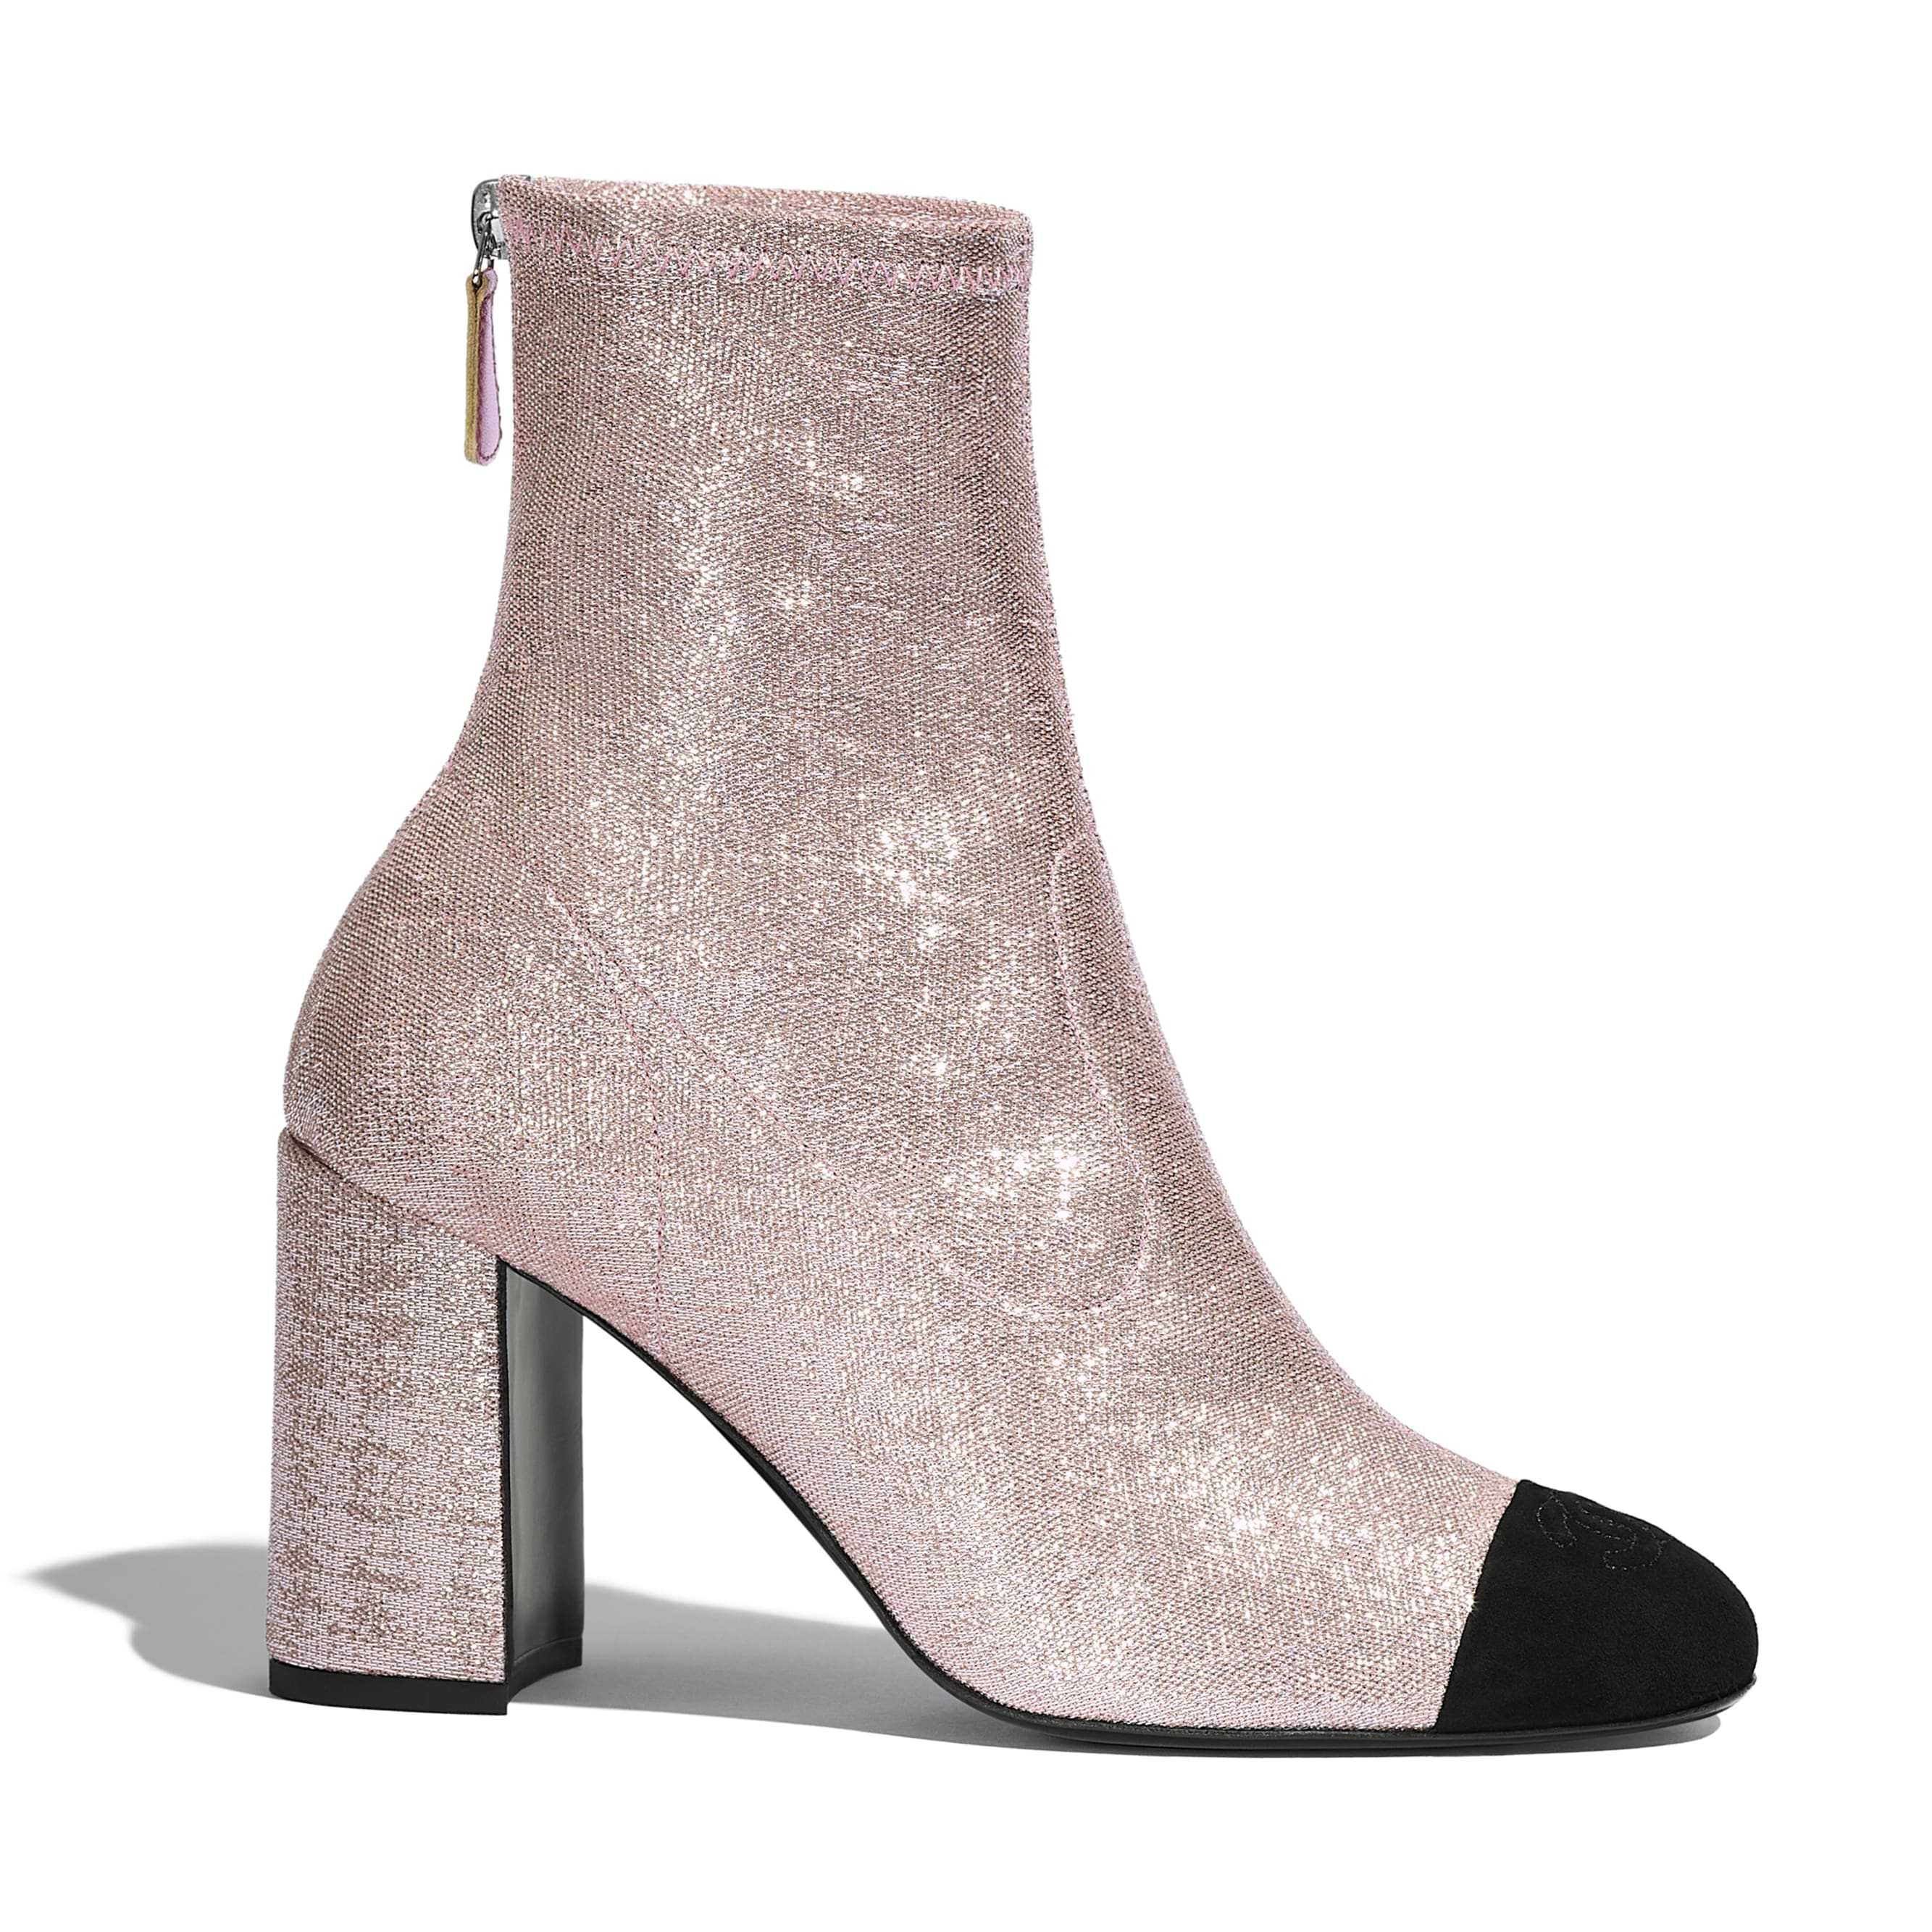 Ankle Boots - Pink & Black - Fabric & Suede Kidskin - CHANEL - Default view - see standard sized version